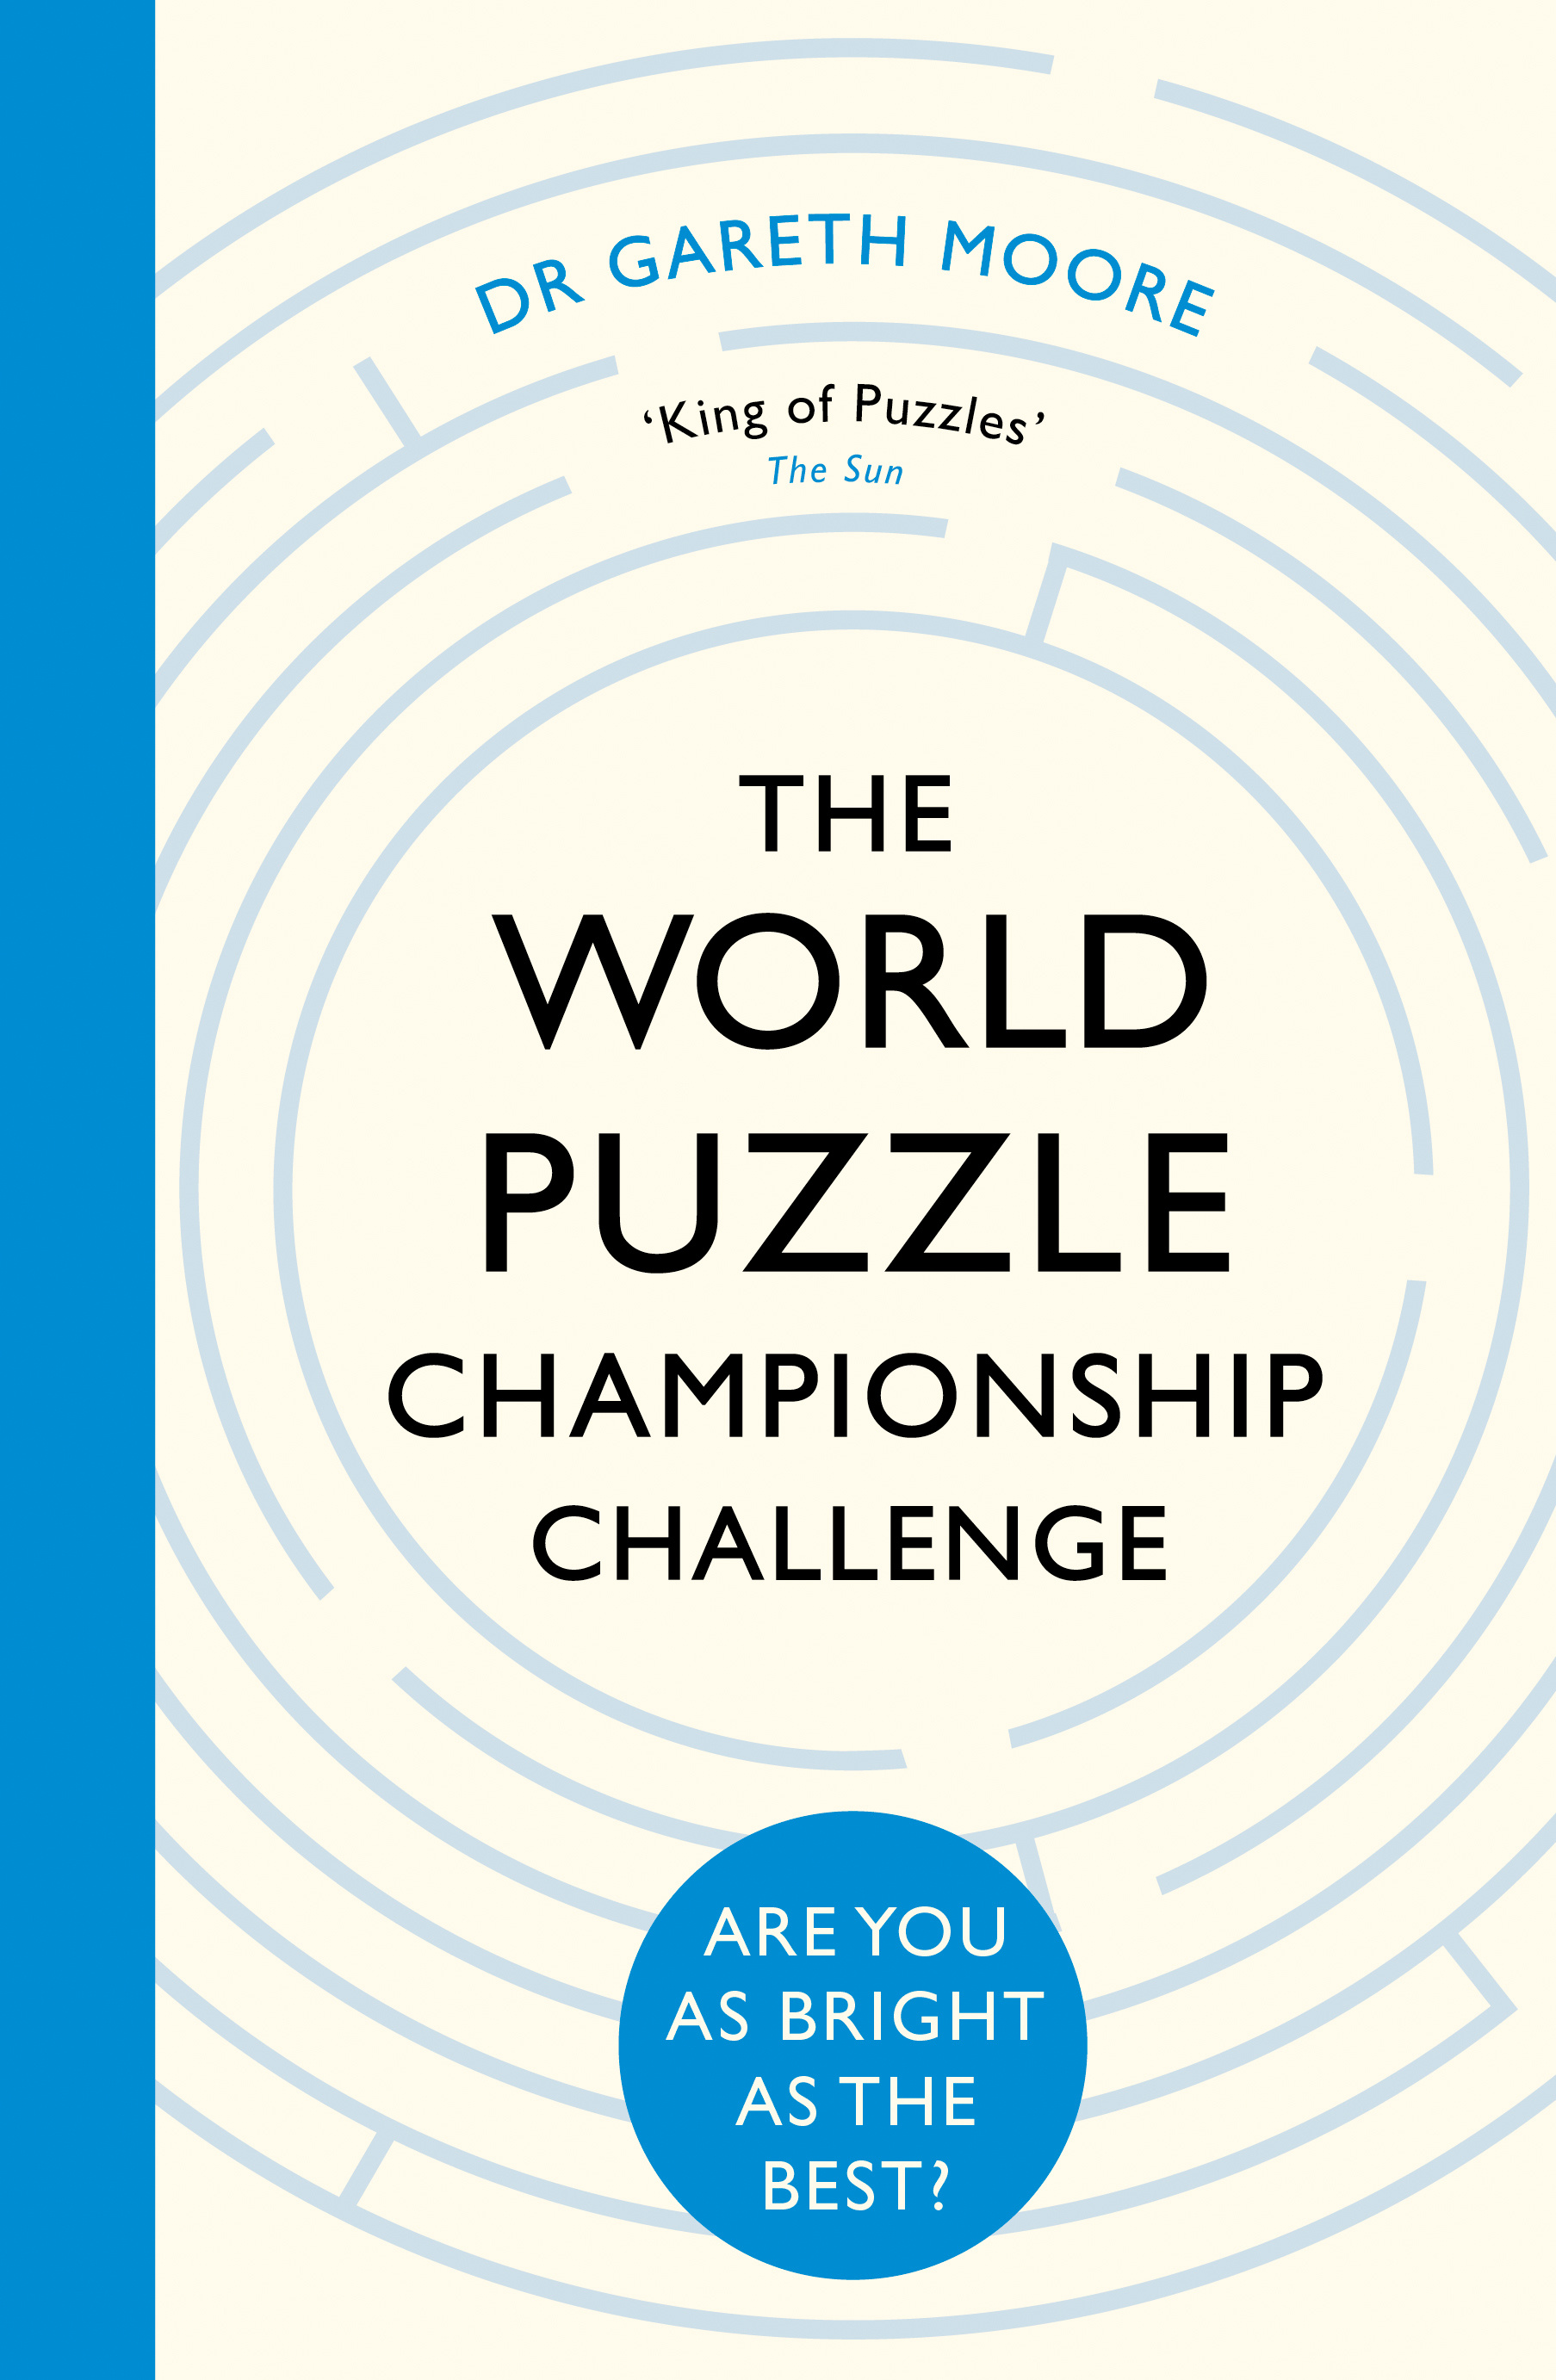 The World Puzzle Championship ChallengeAre You as Bright as the Best?